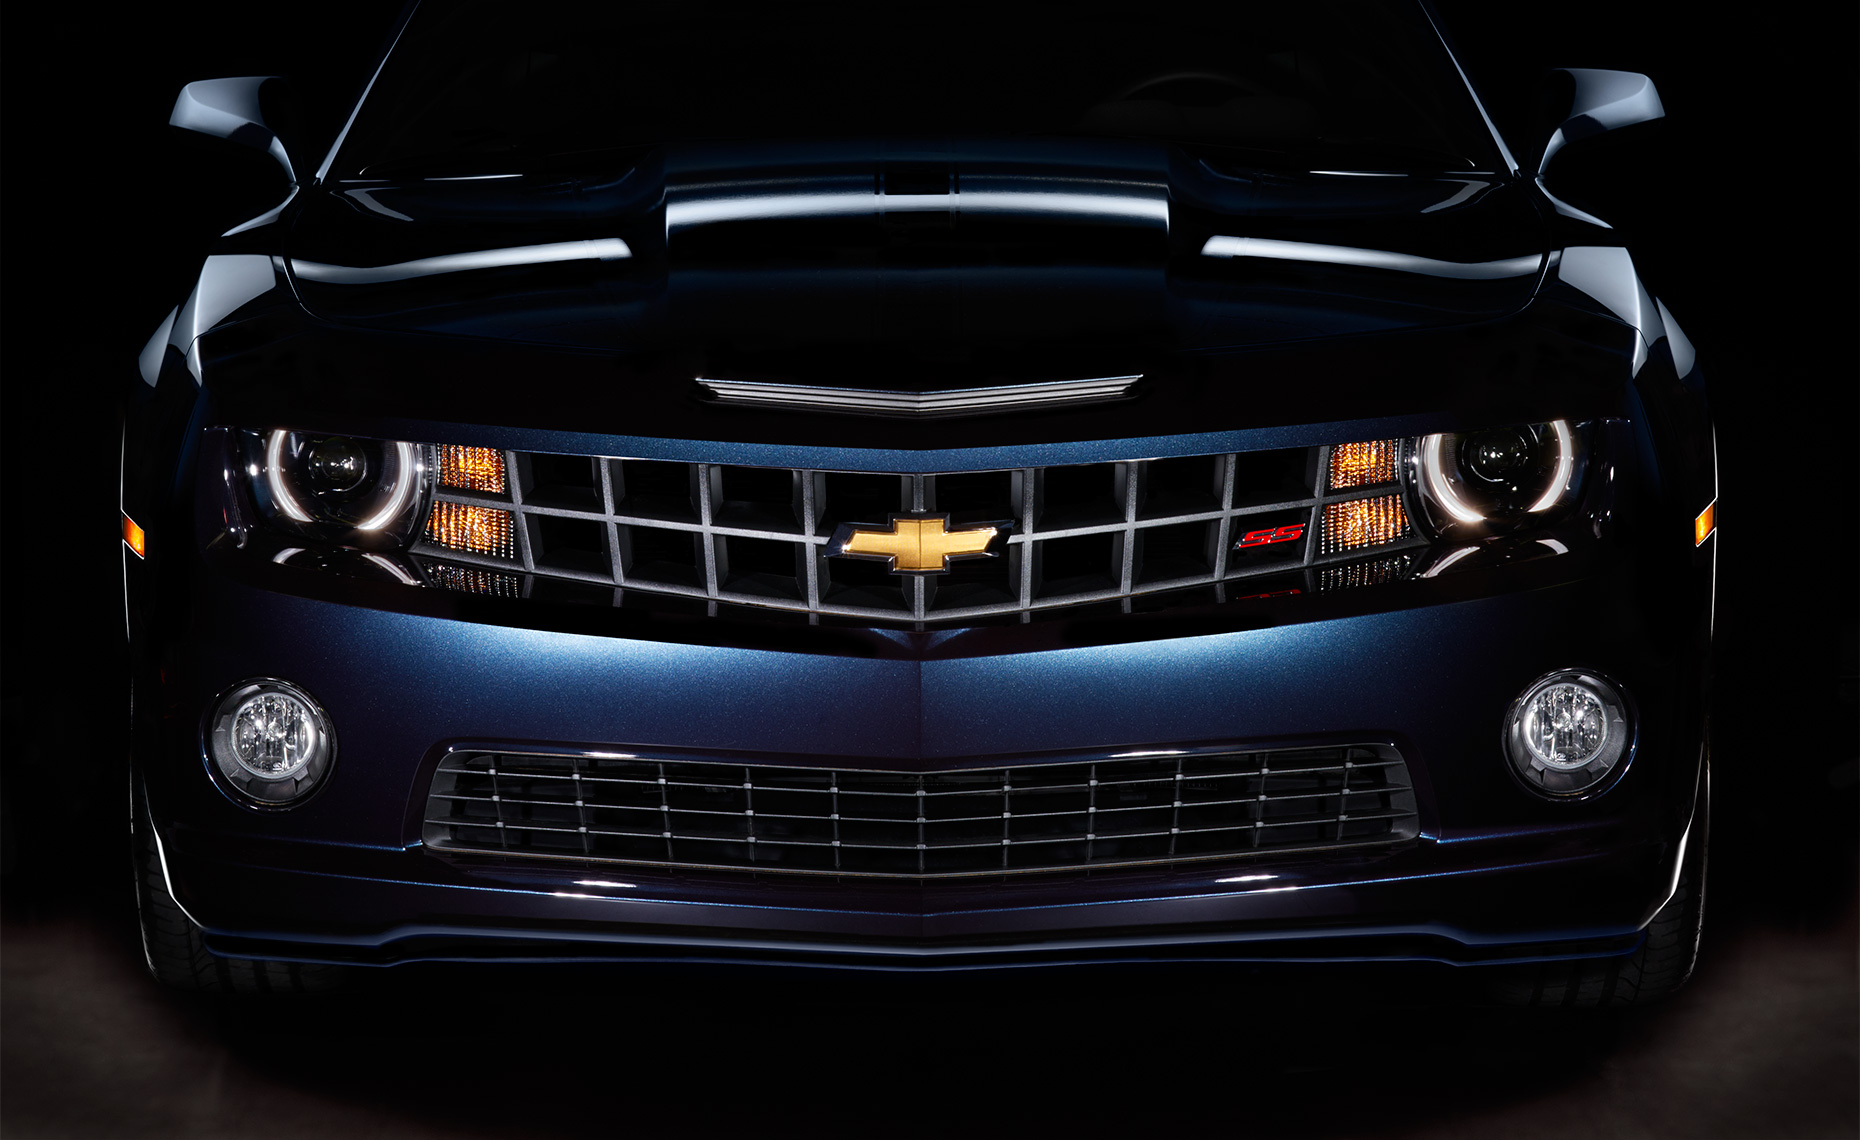 2013Camaro_StateFarmTheater_WebSite_Final.jpg